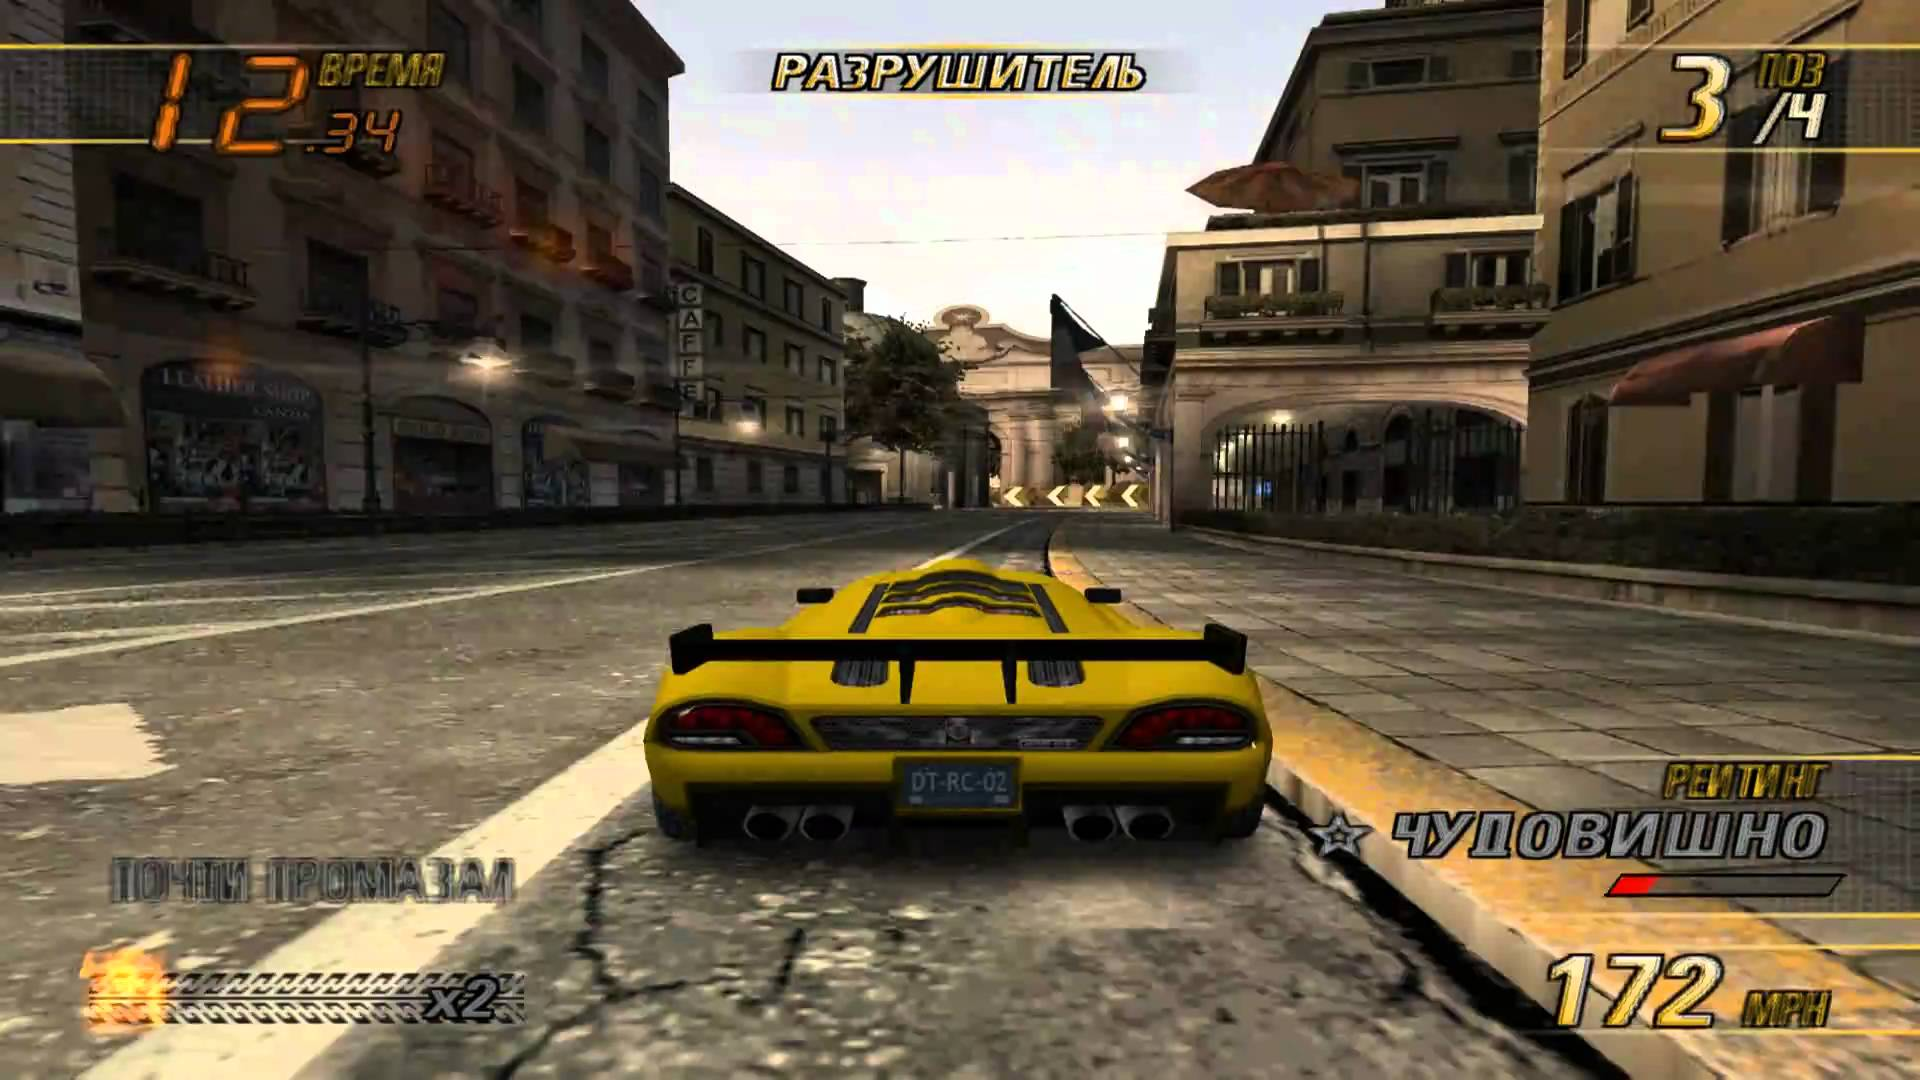 Burnout Revenge wallpapers, Video Game, HQ Burnout Revenge